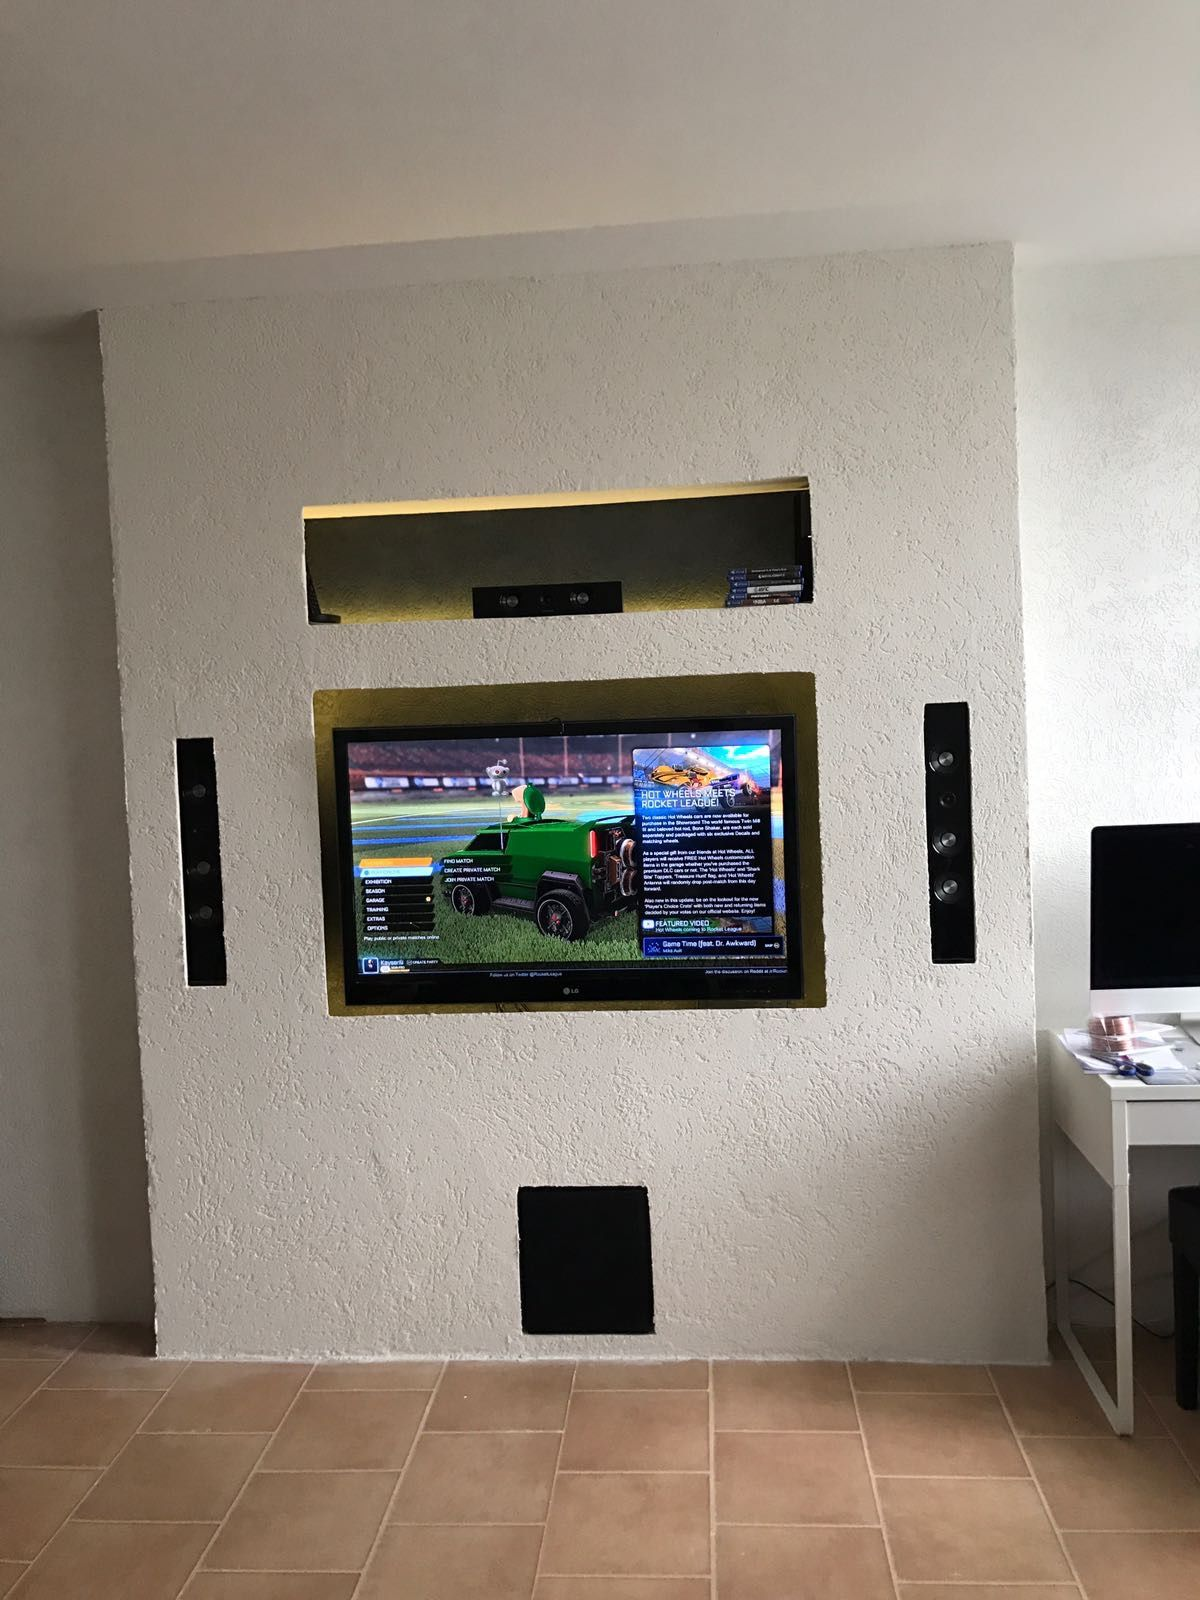 Diy Tv Wall Unit Inside The Wall 1) Tv 47